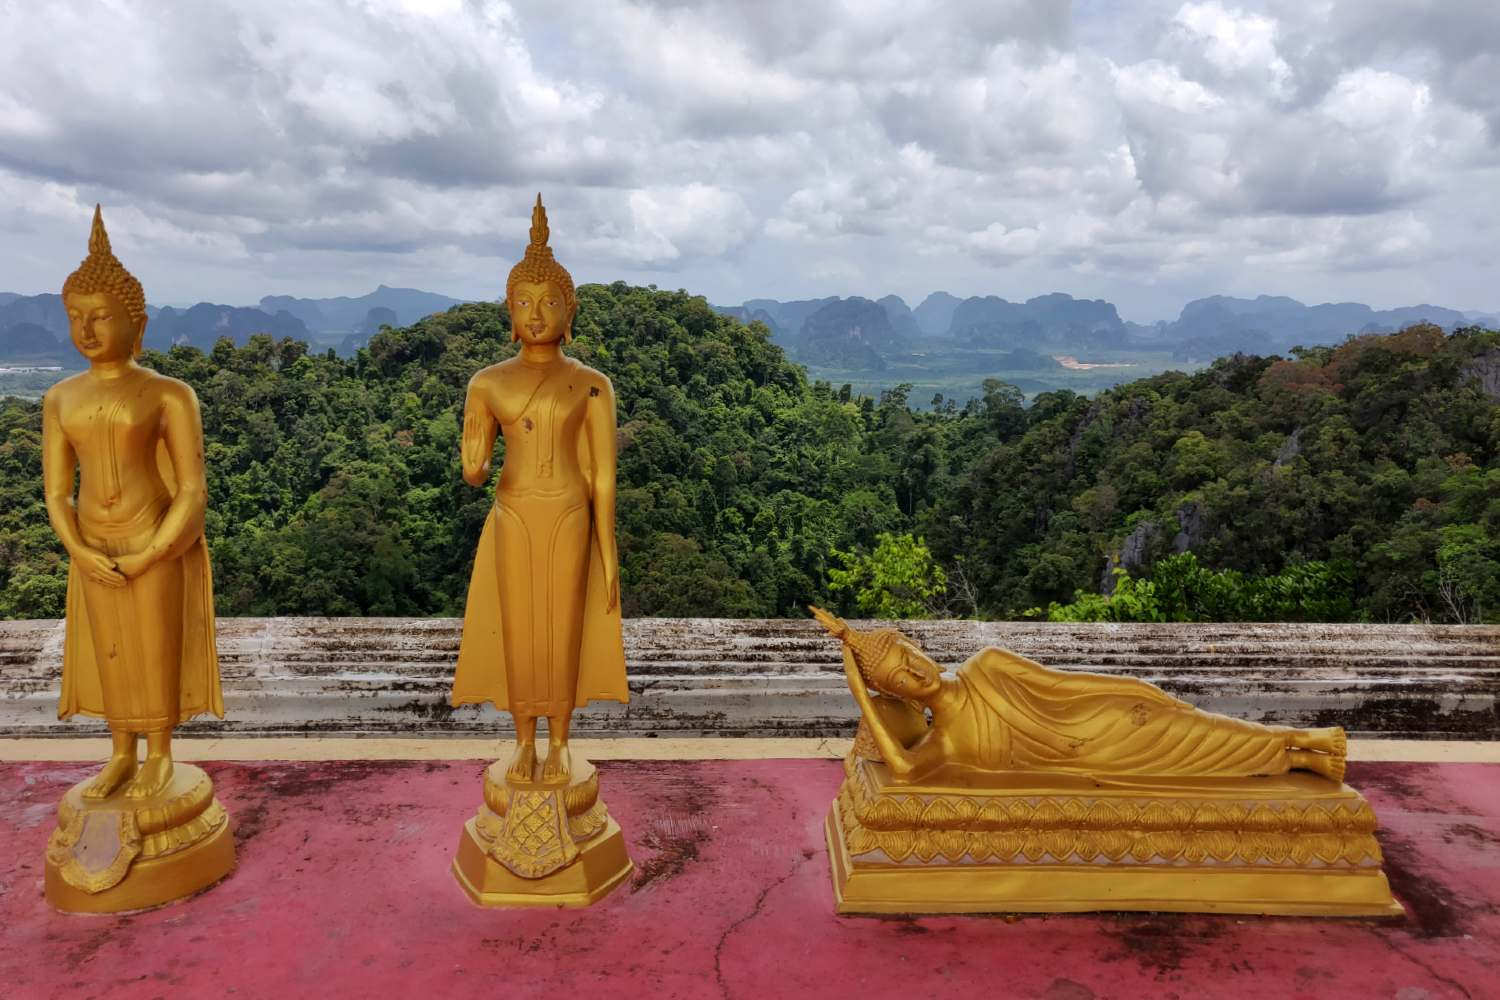 Little golden Buddhas at the Tiger Temple with a view over Krabi and the sea in the background.